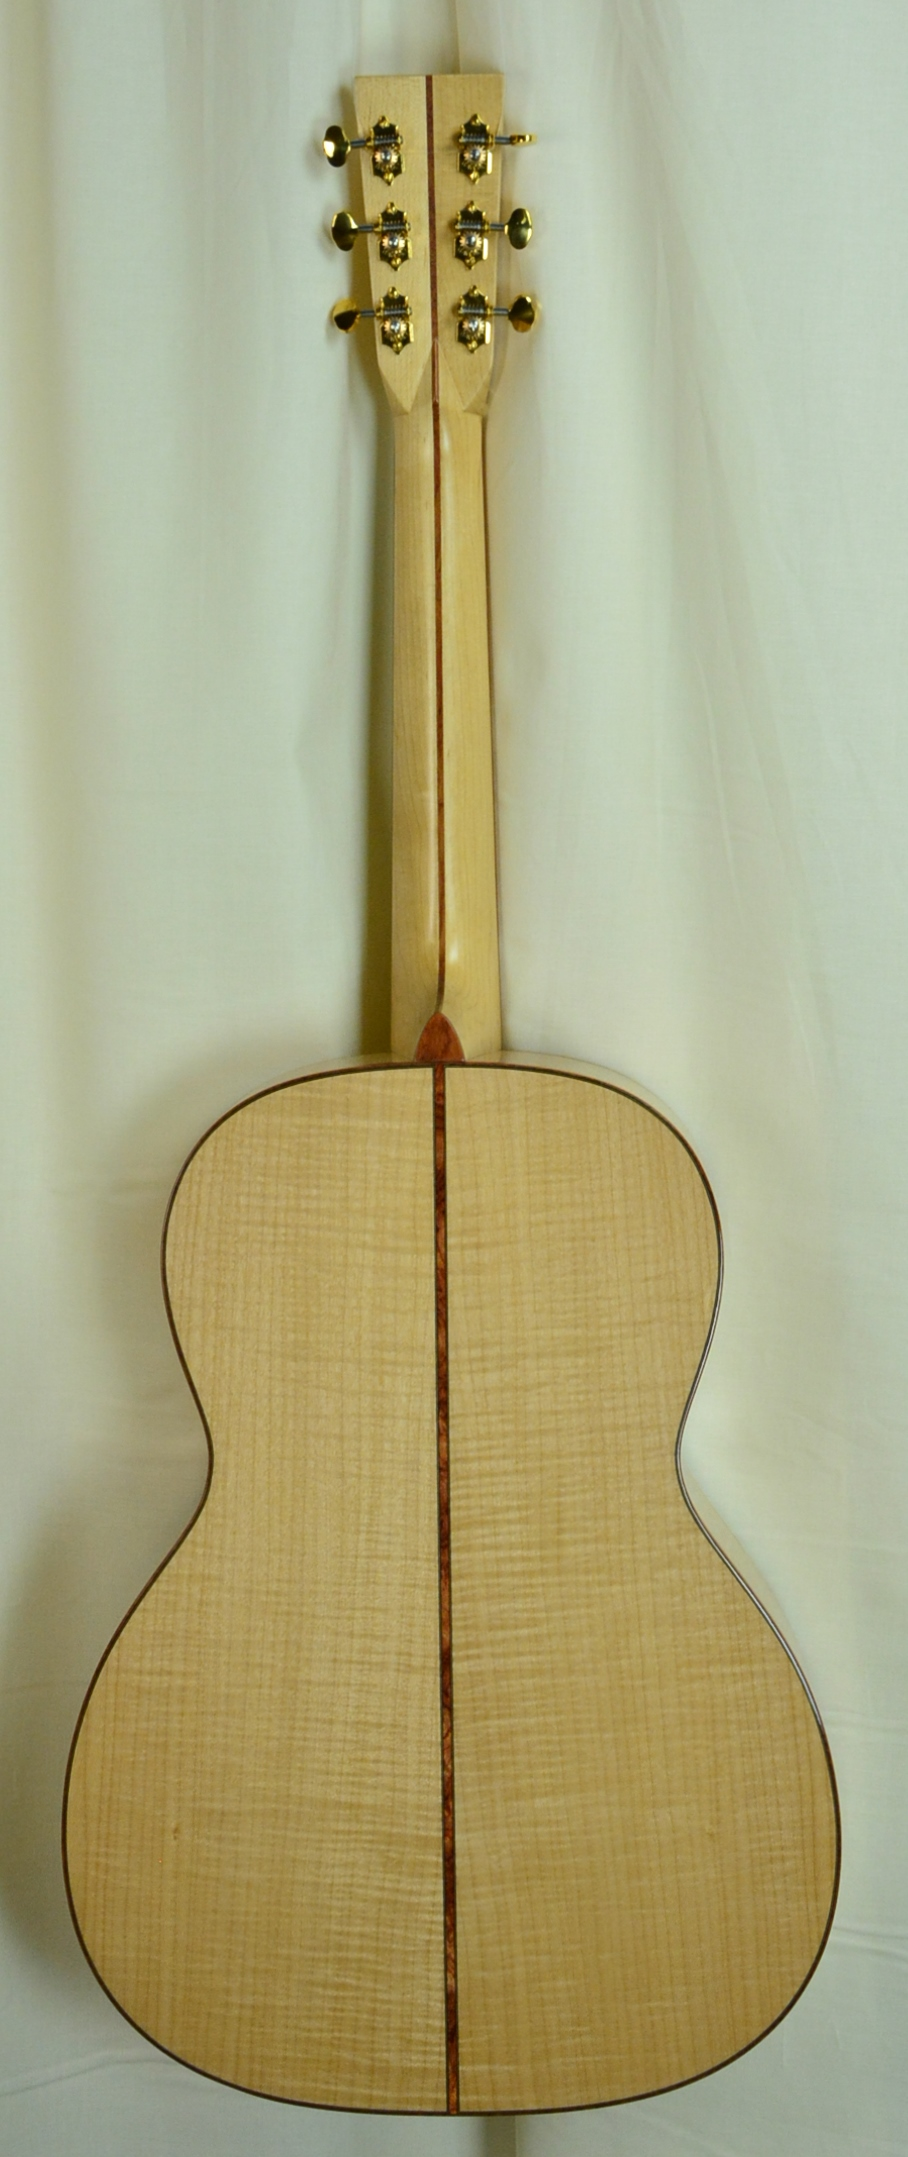 Q-2658124 S-1938295 00028VS Pacific Big Leaf Maple AAAA, Maple neck Bubinga binding (3).JPG